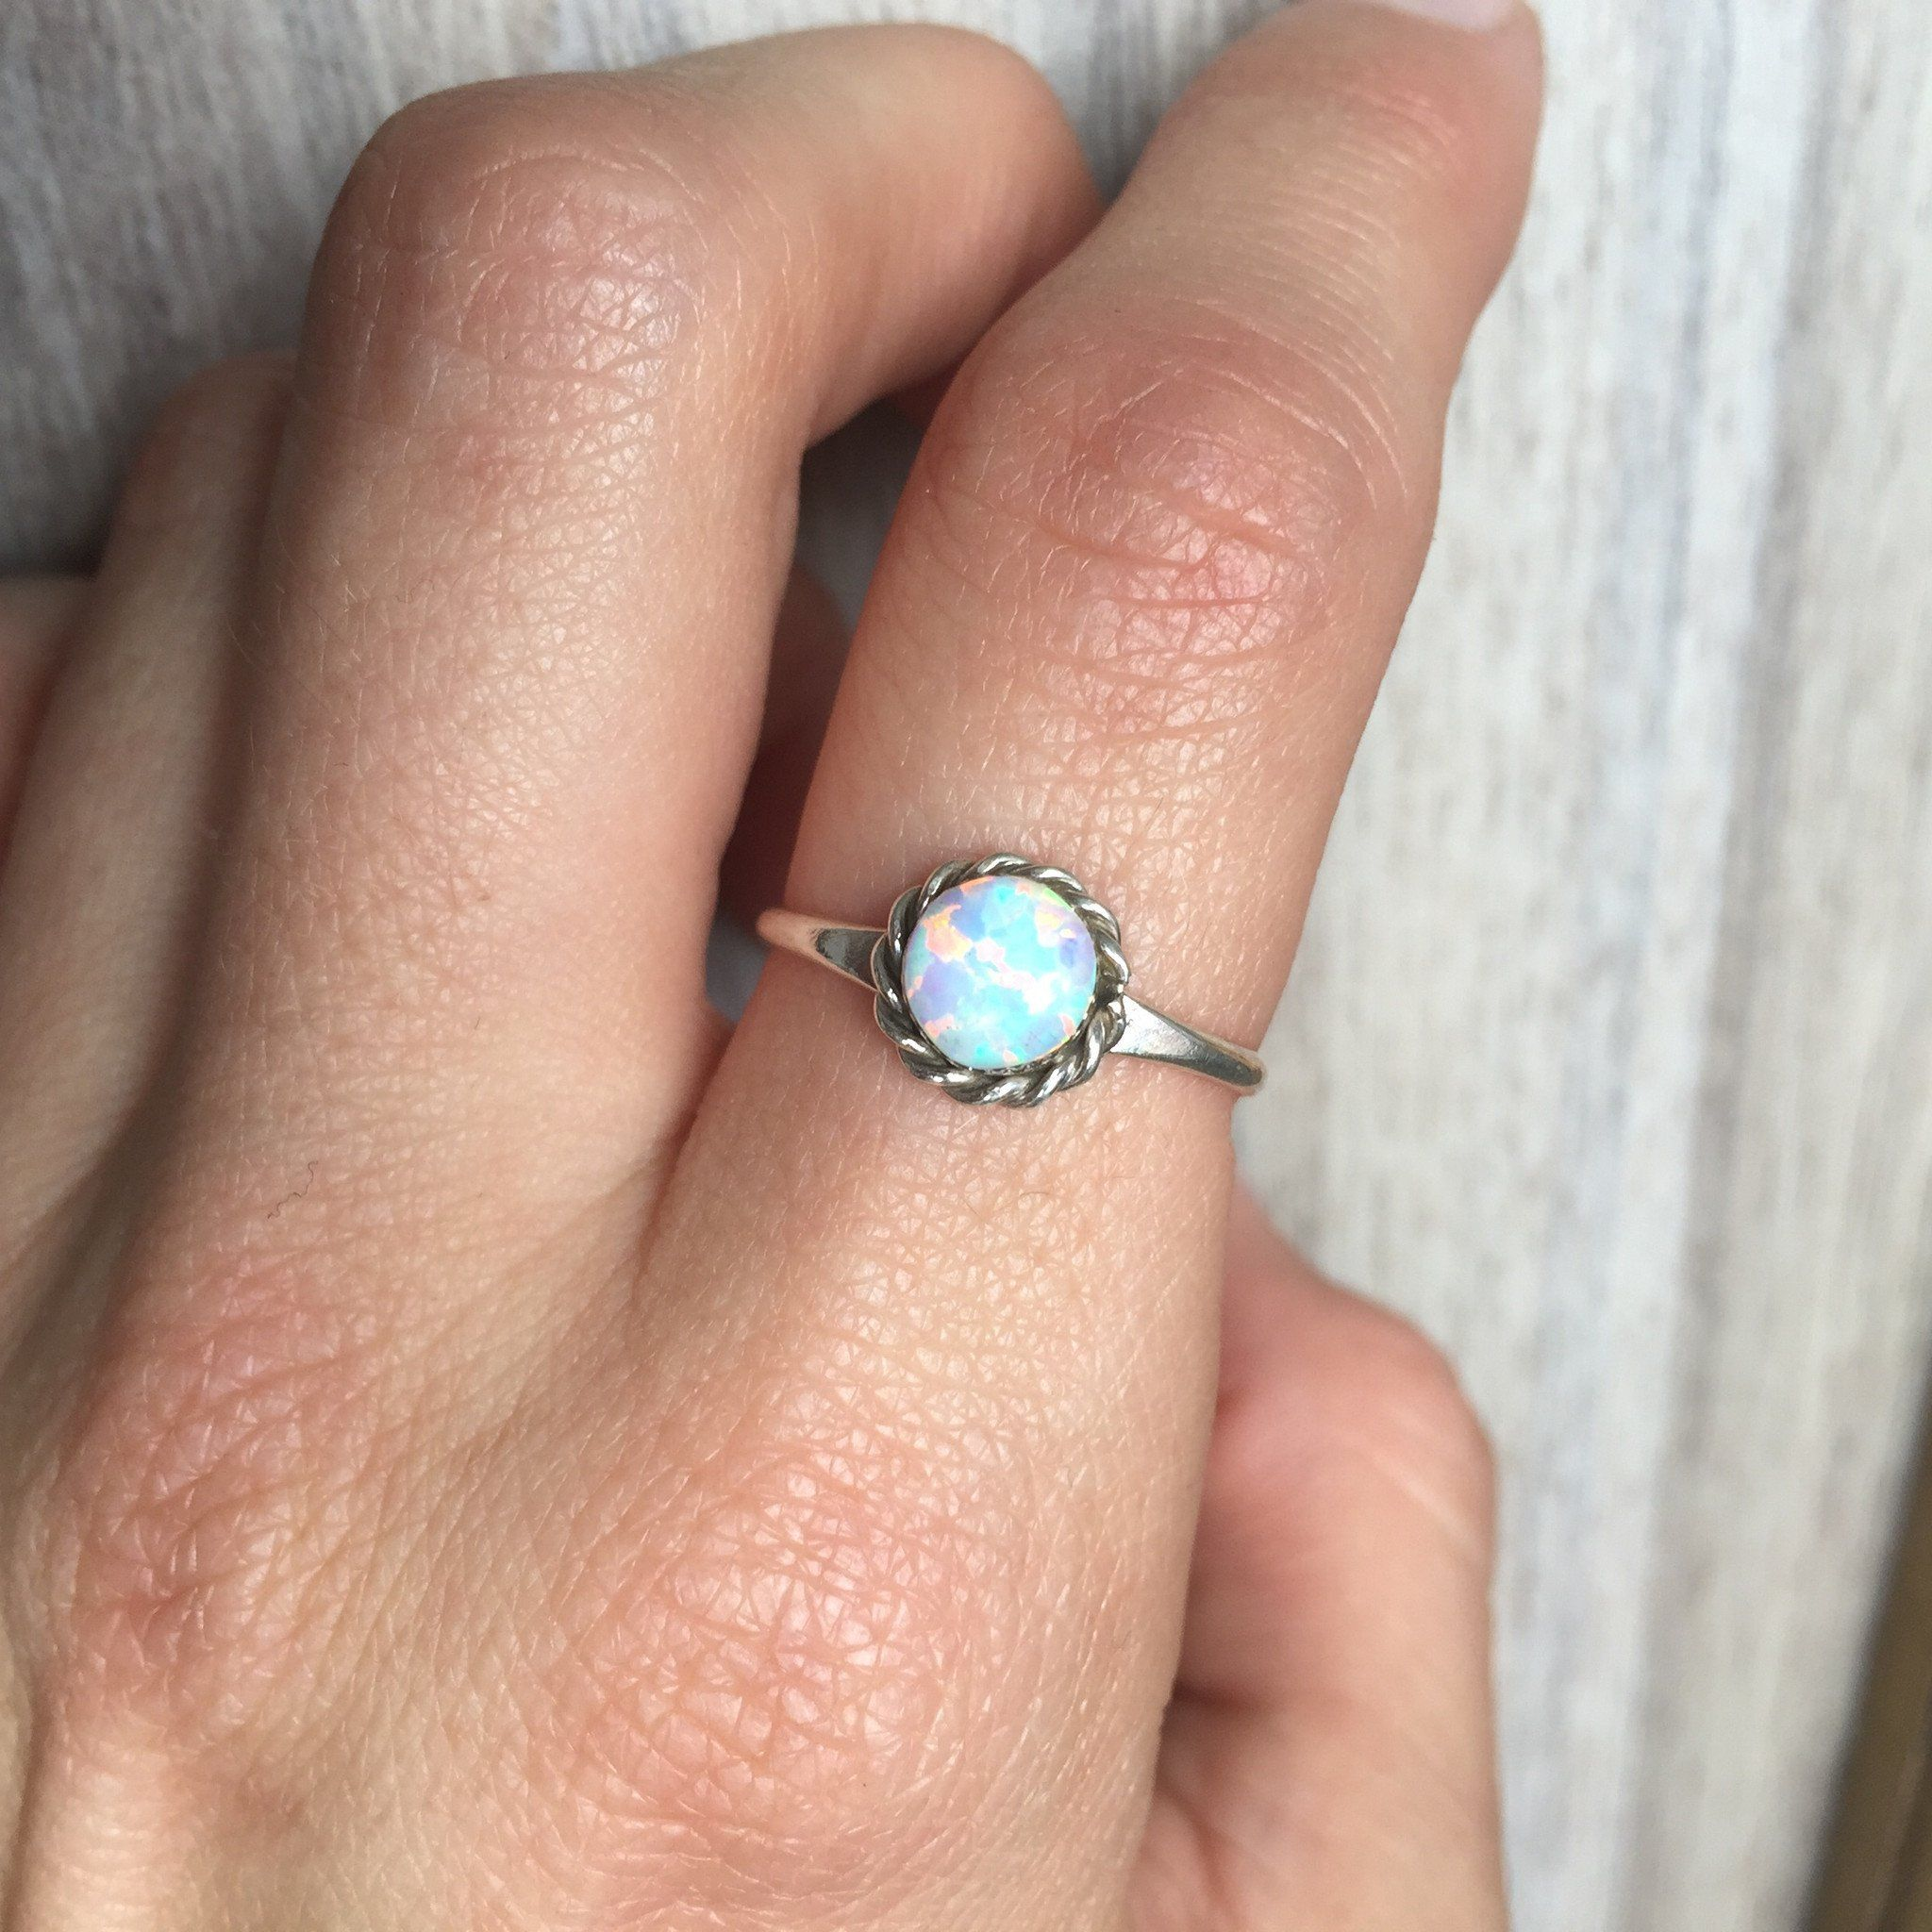 Opal Zuni Ring White bohemian gypsy festival jewellery indie and